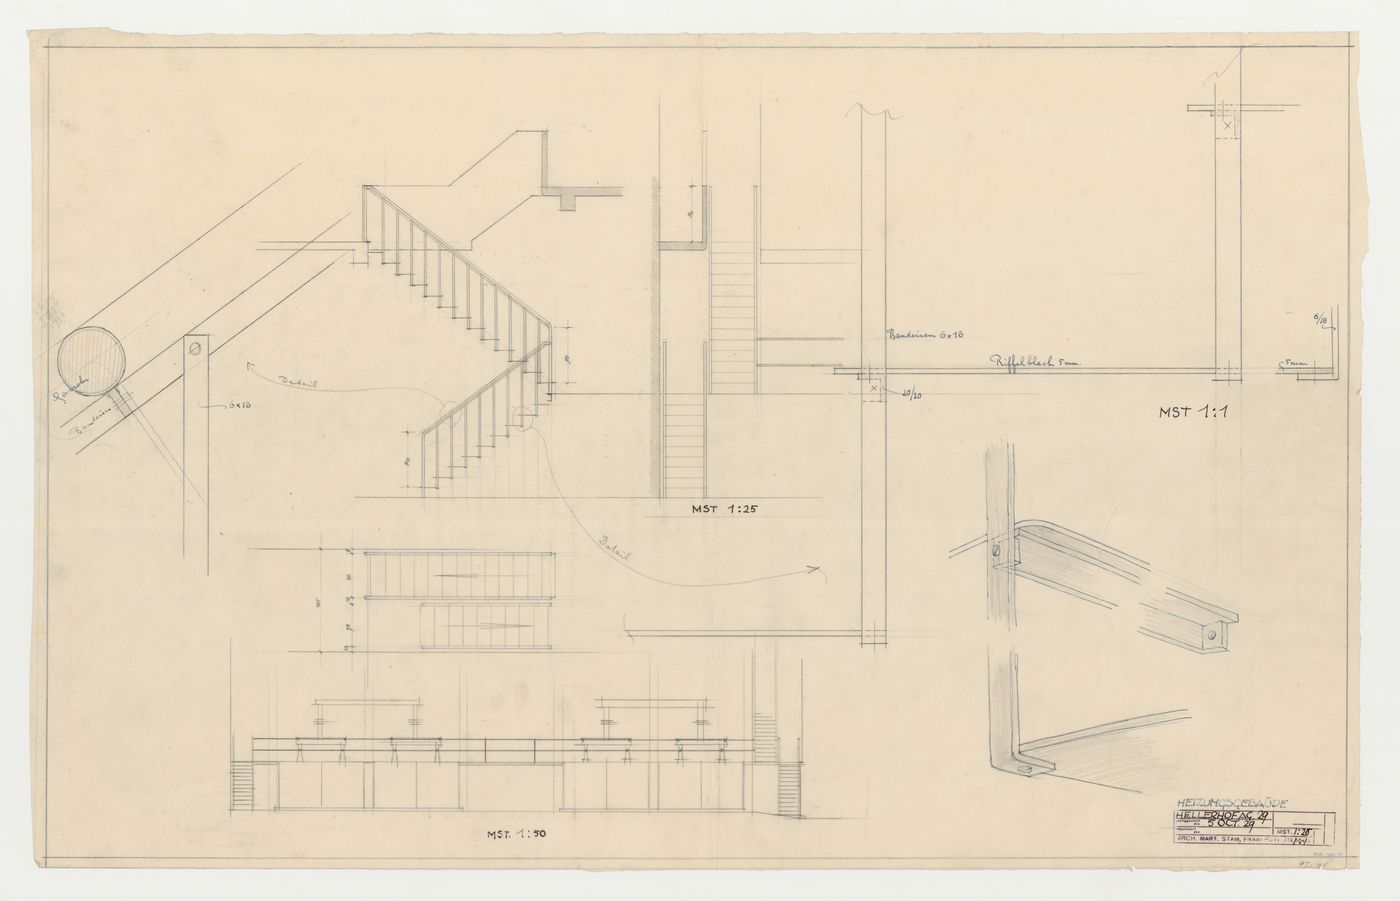 DR1984:1029, Plan, elevation, section, and sectional details for stairs